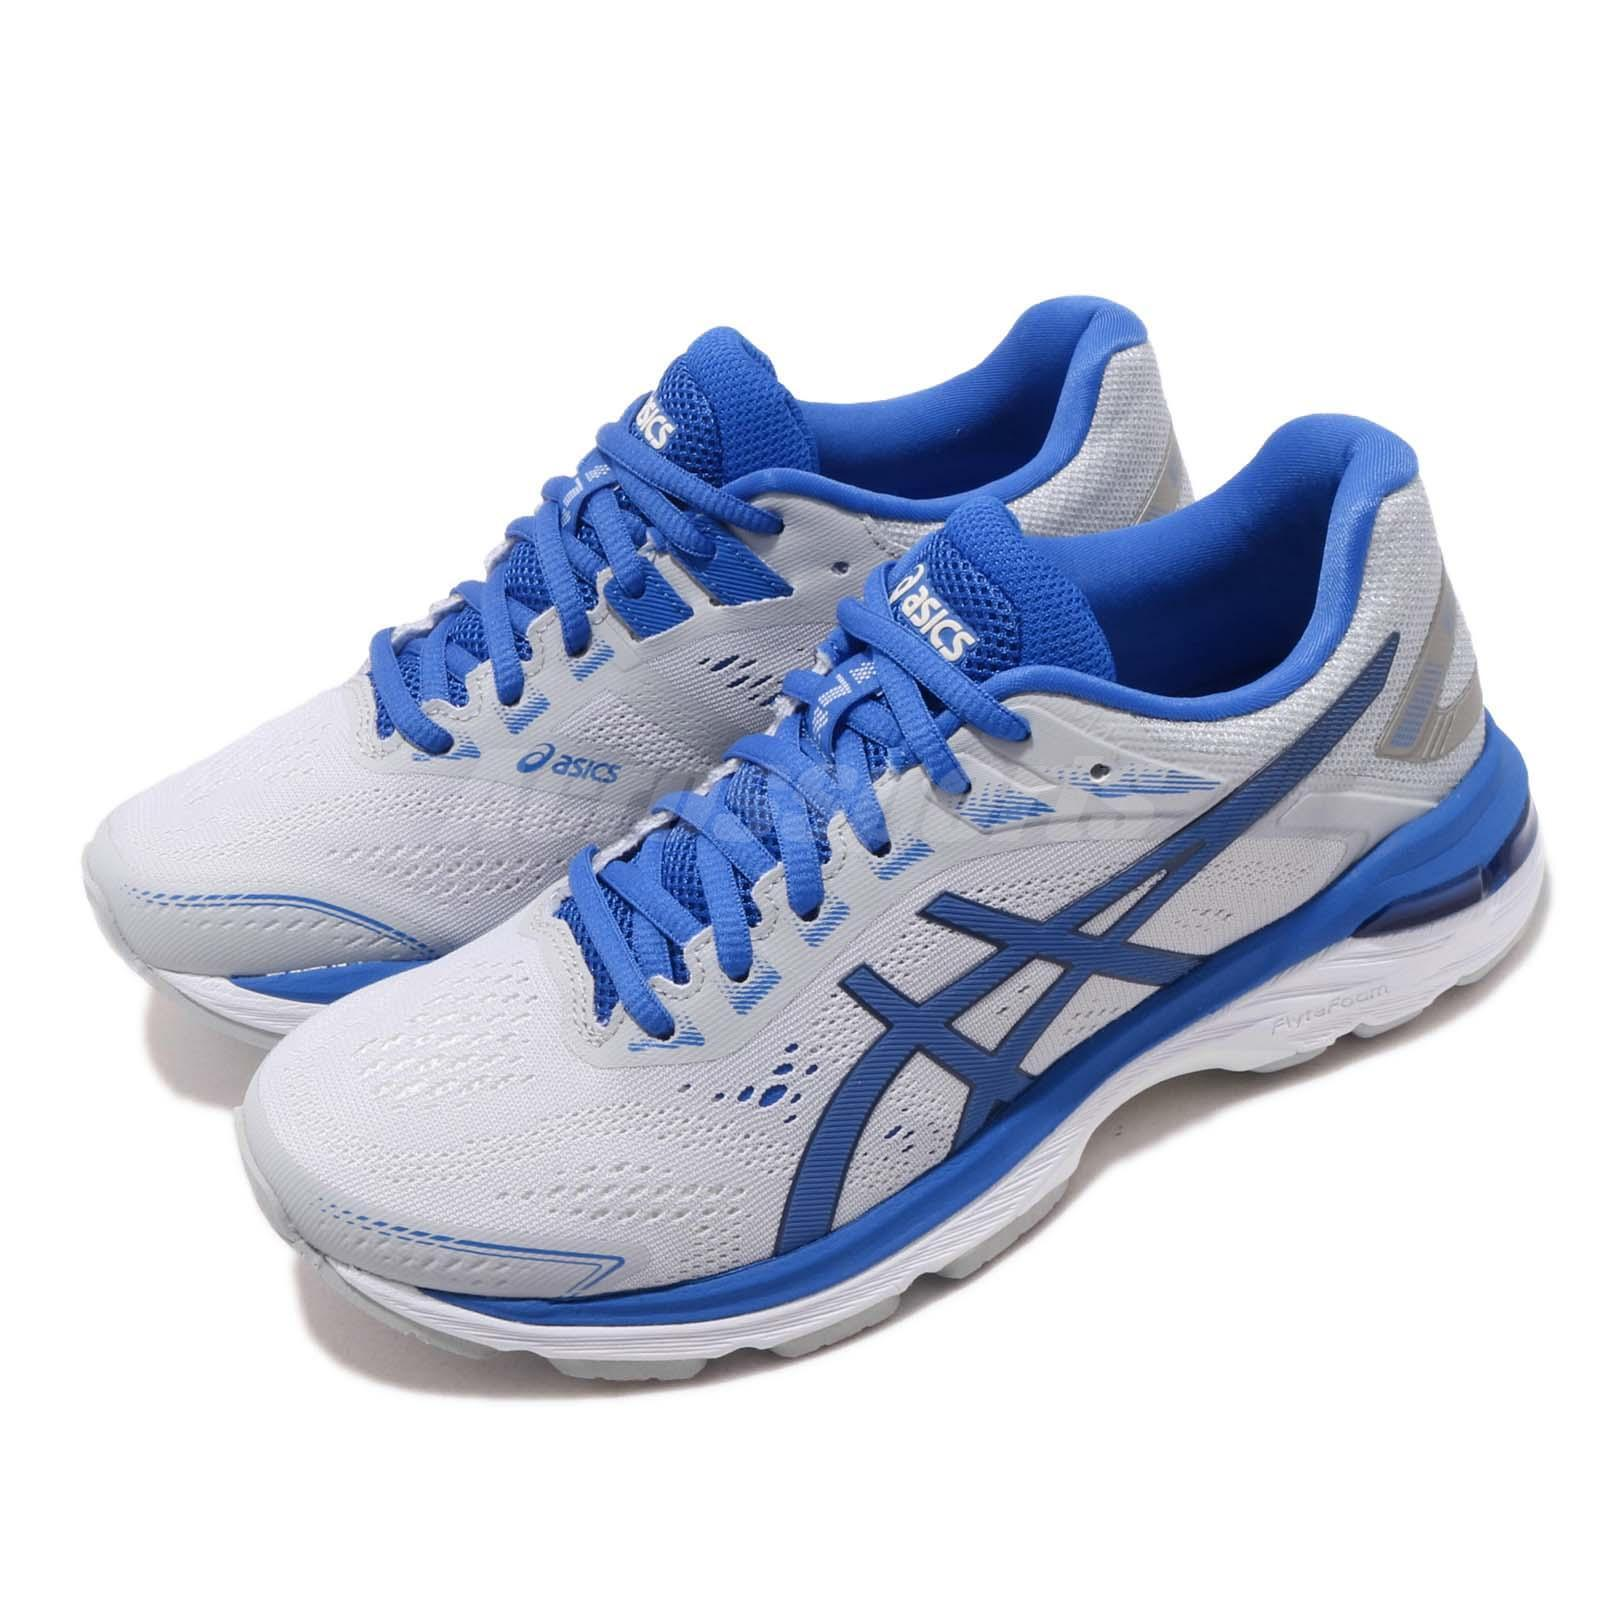 Asics GT2000 7 Lite Show Grey  blueee Women Running shoes Sneakers 1012A186-020  offering 100%